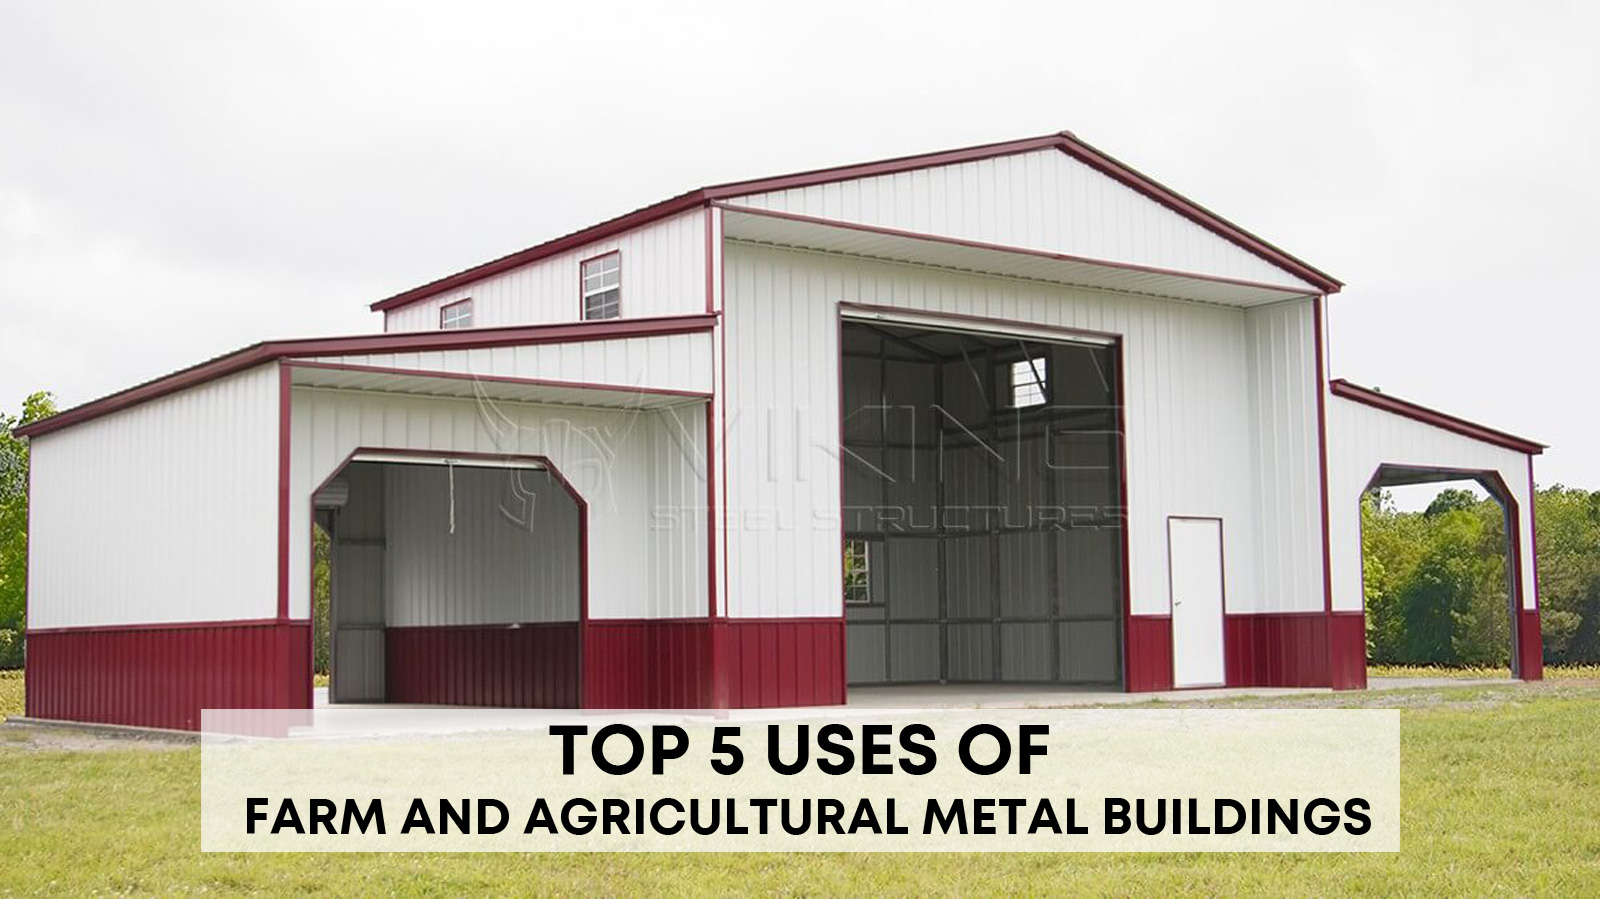 Top 5 Uses of Farm and Agricultural Metal Buildings